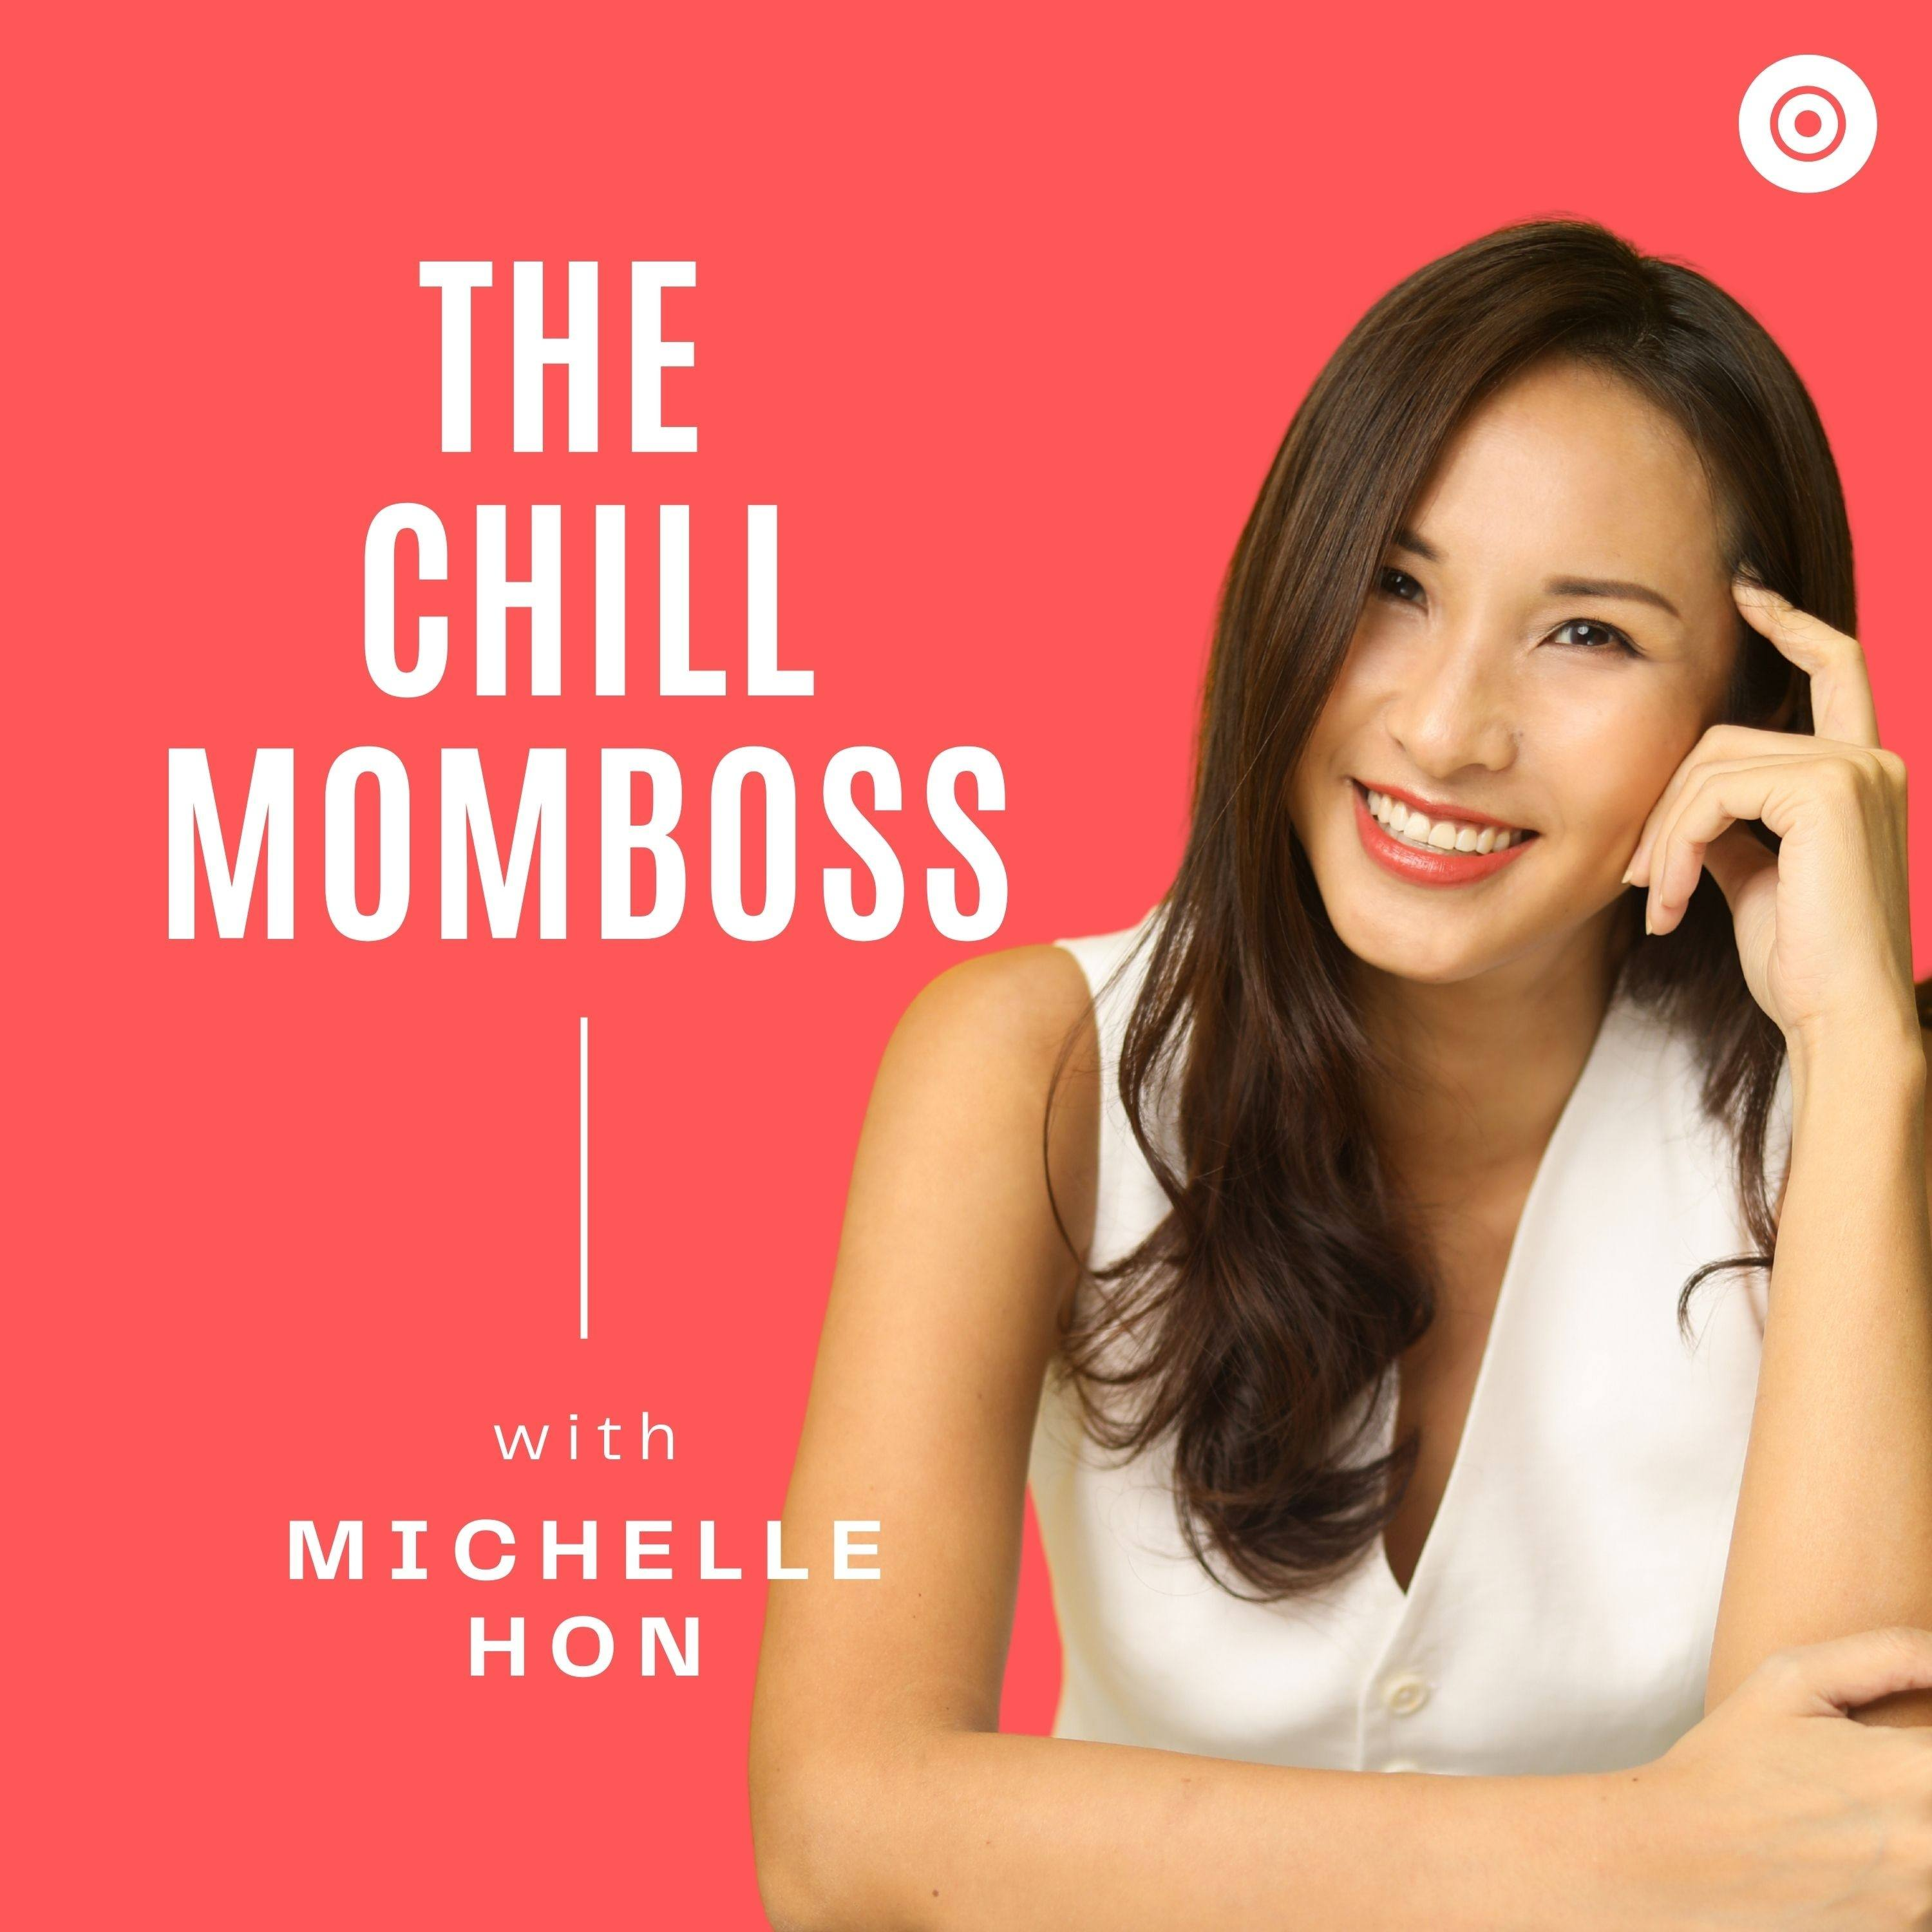 The Chill MomBoss - Build a Profitable Business from Home while Raising Kids